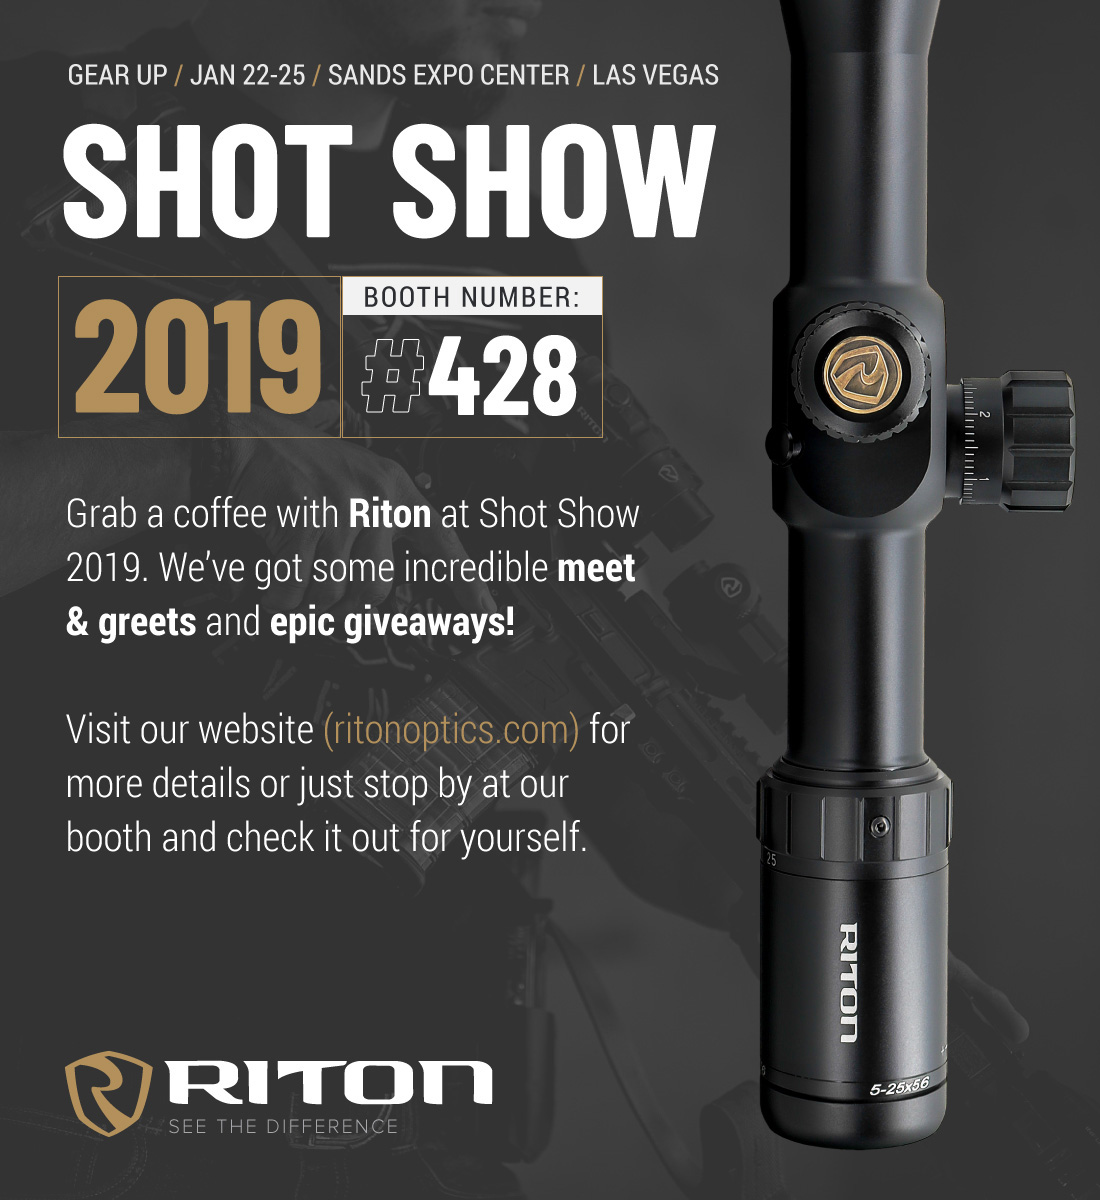 Join Craig and Donna Boddington at the Riton Booth for HUNTING DAY- Tuesday, January 22nd at the 2019 SHOT Show.